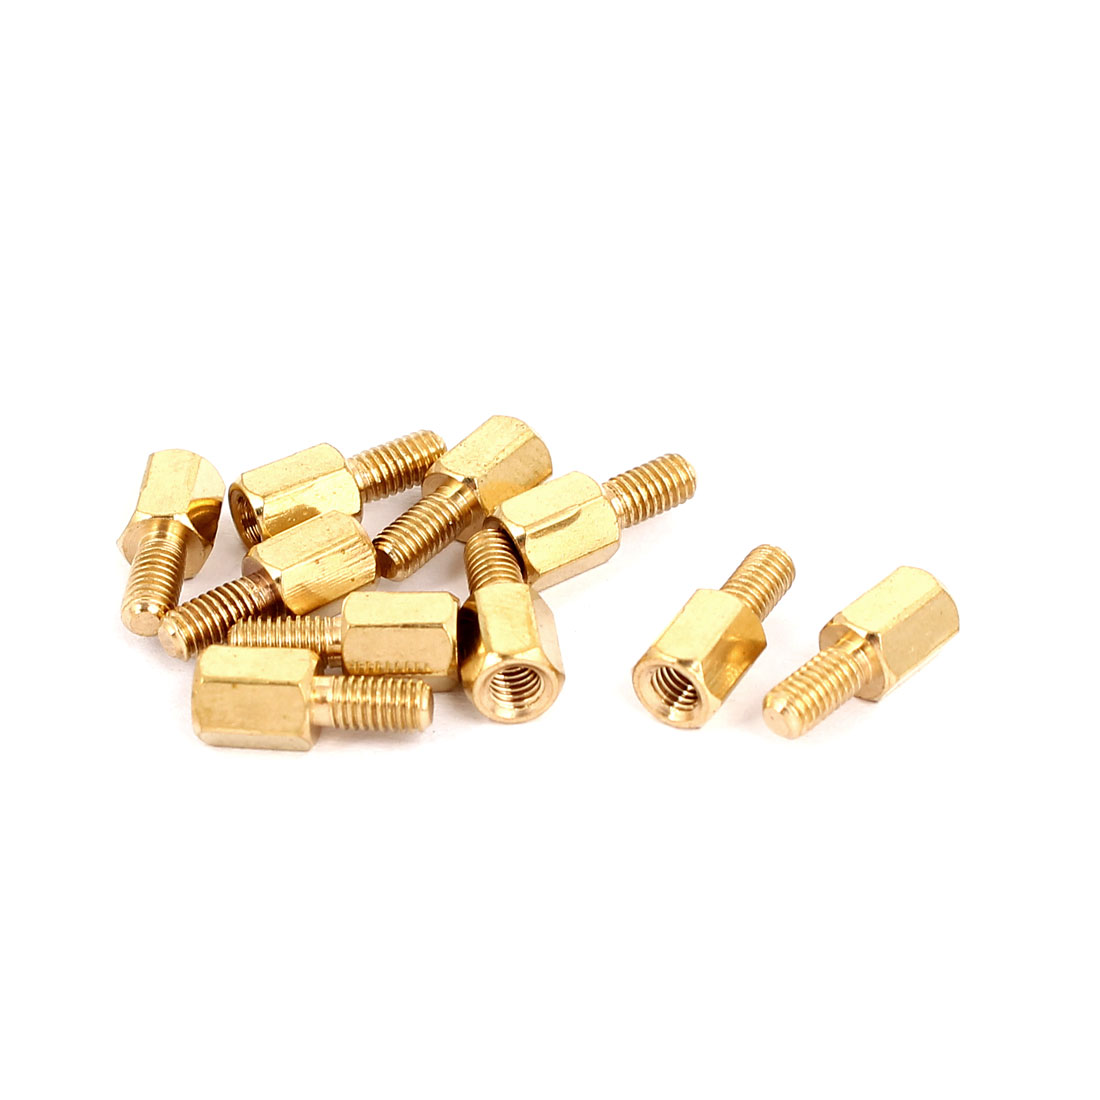 M3 Male/Female Thread Brass Hexagonal PCB Spacer Standoff Support 6mm+6mm 10pcs